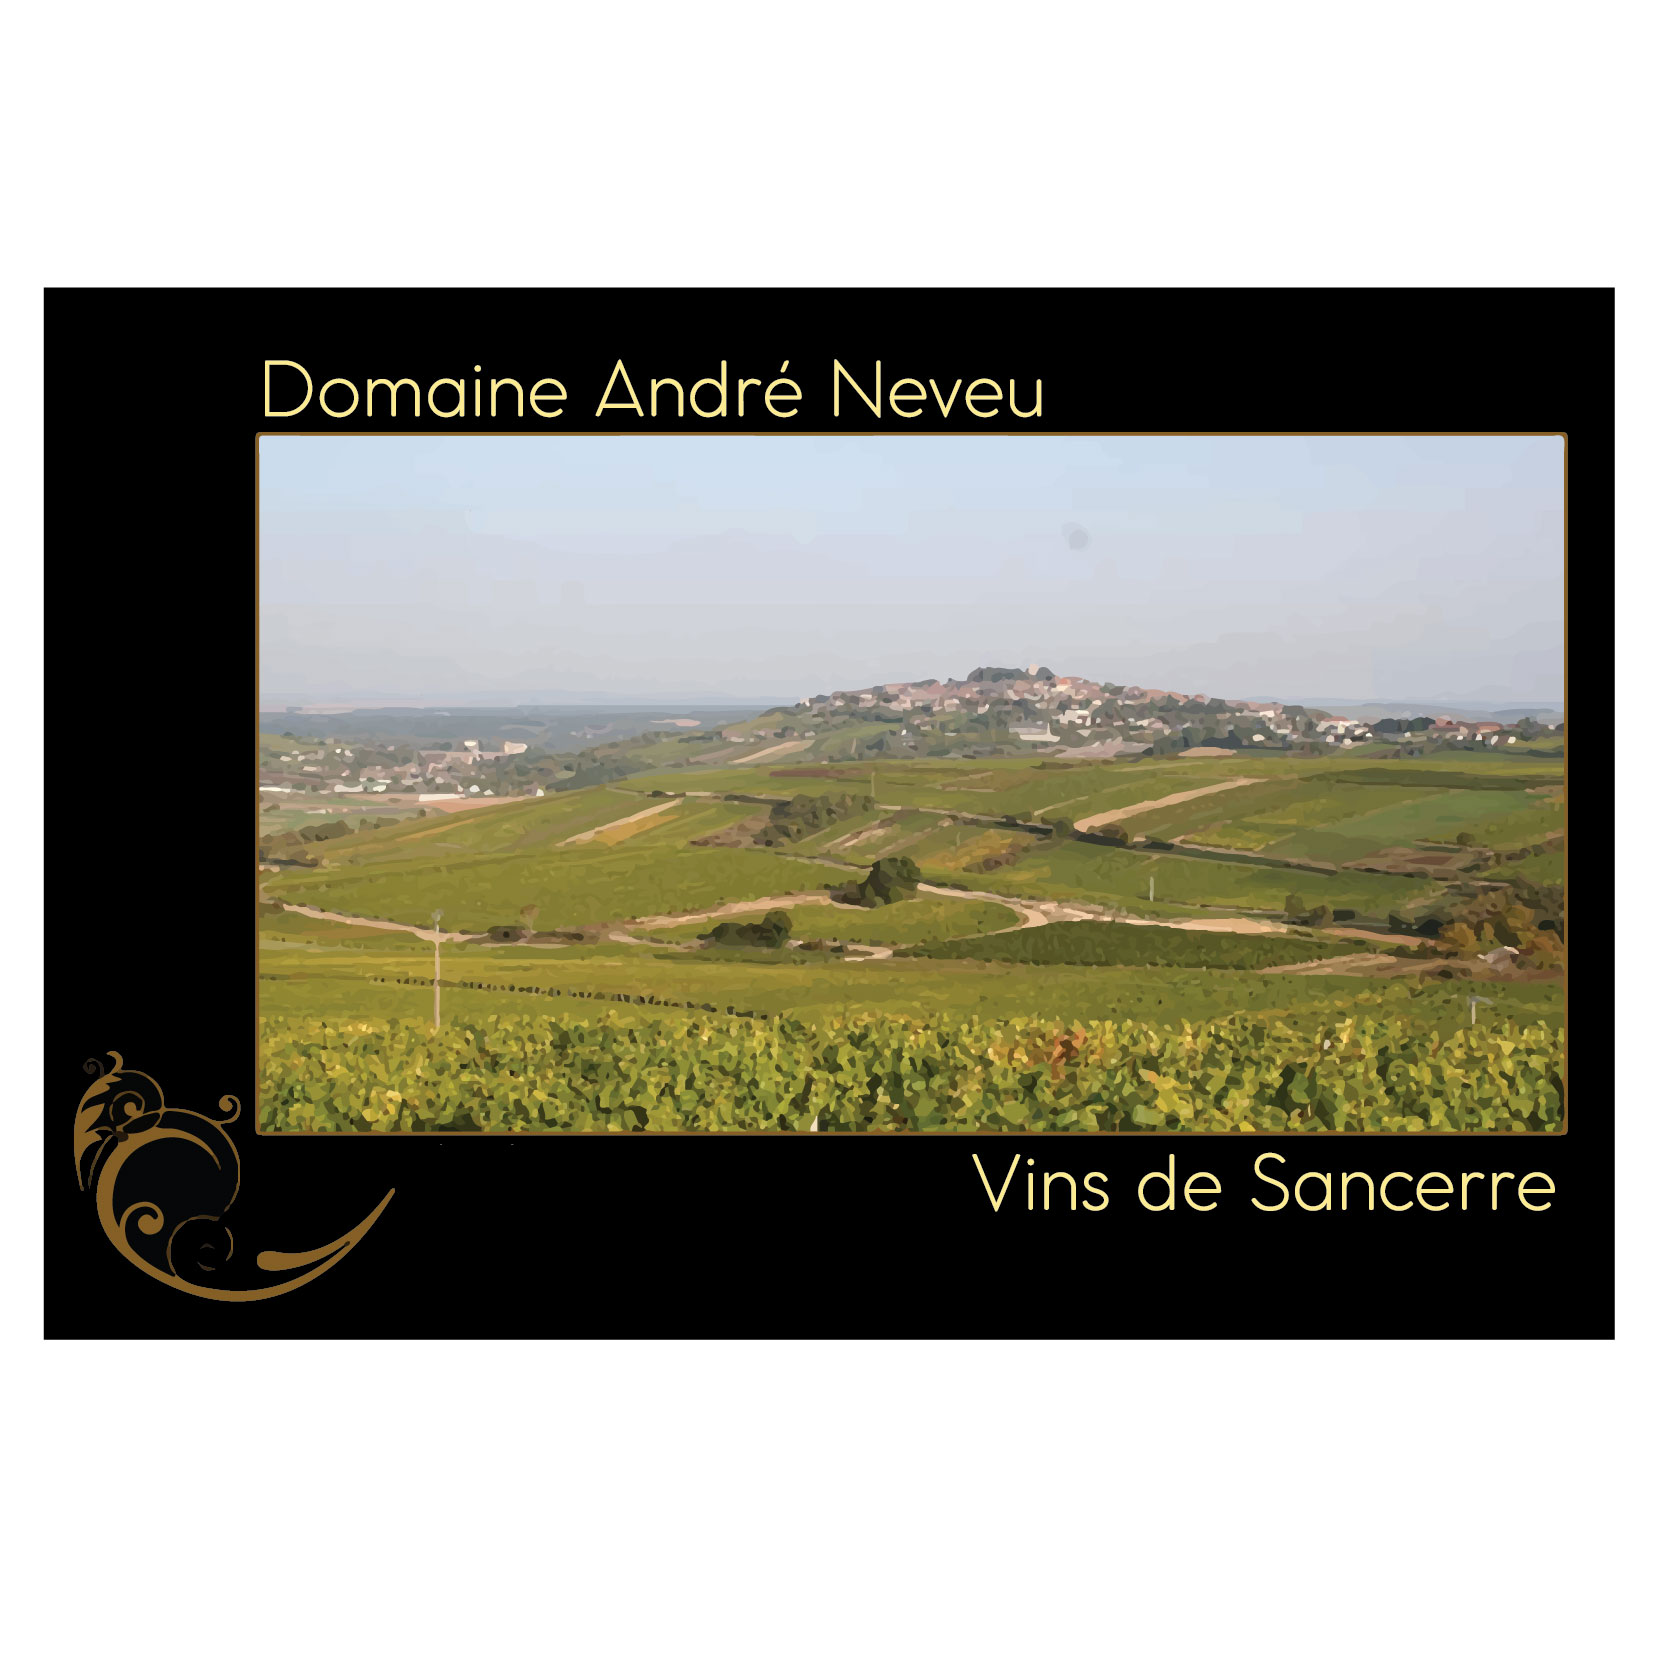 DOMAINE ANDRE NEVEU